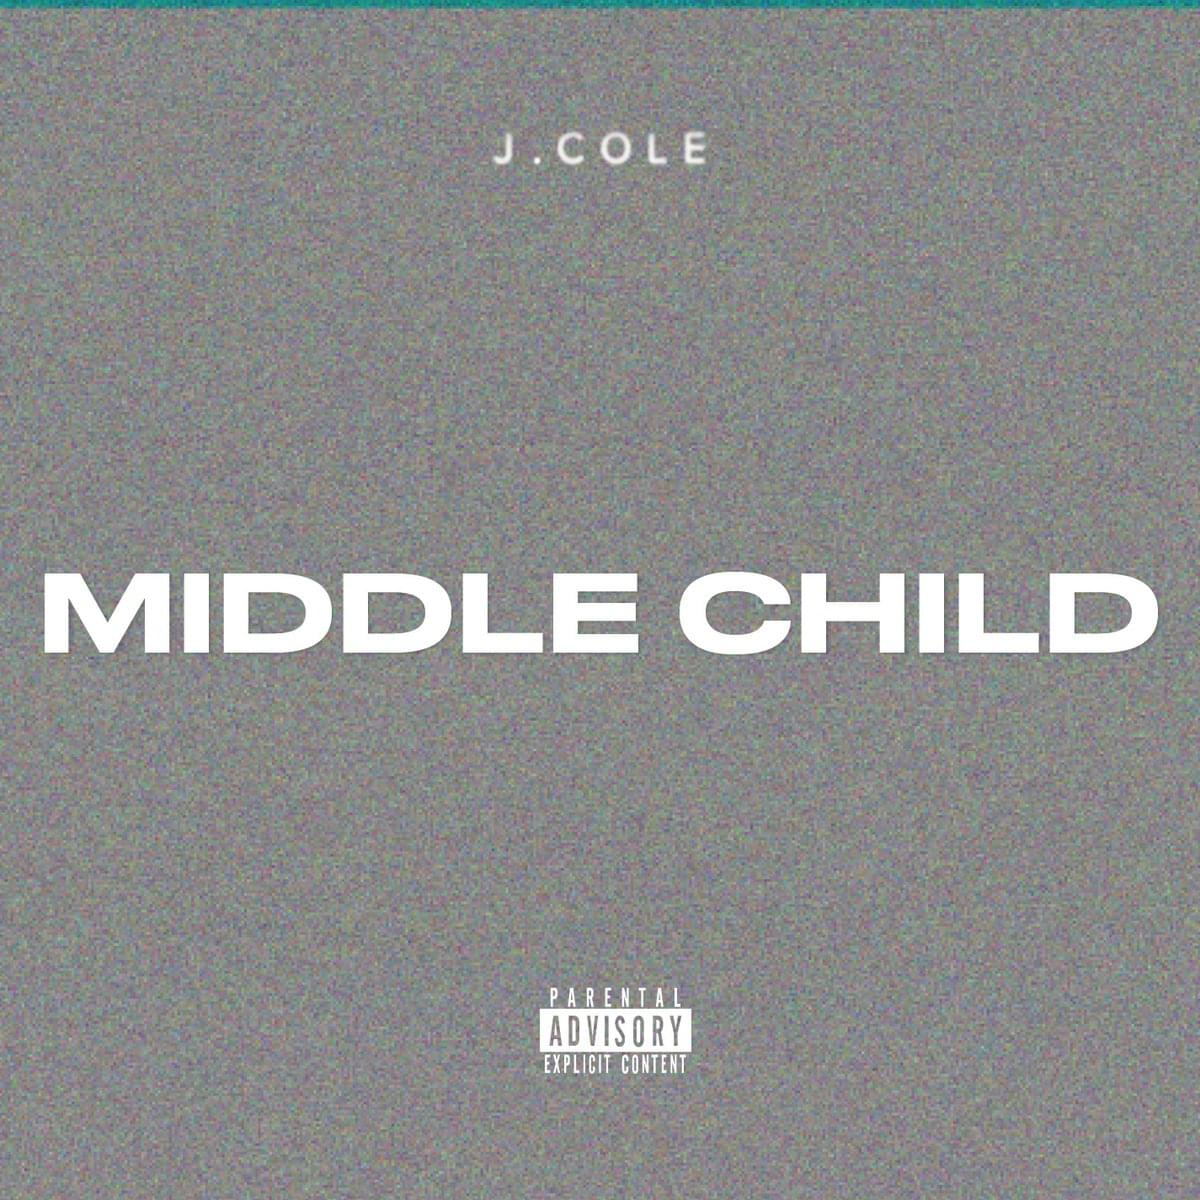 J. Cole | Middle Child | Single Review